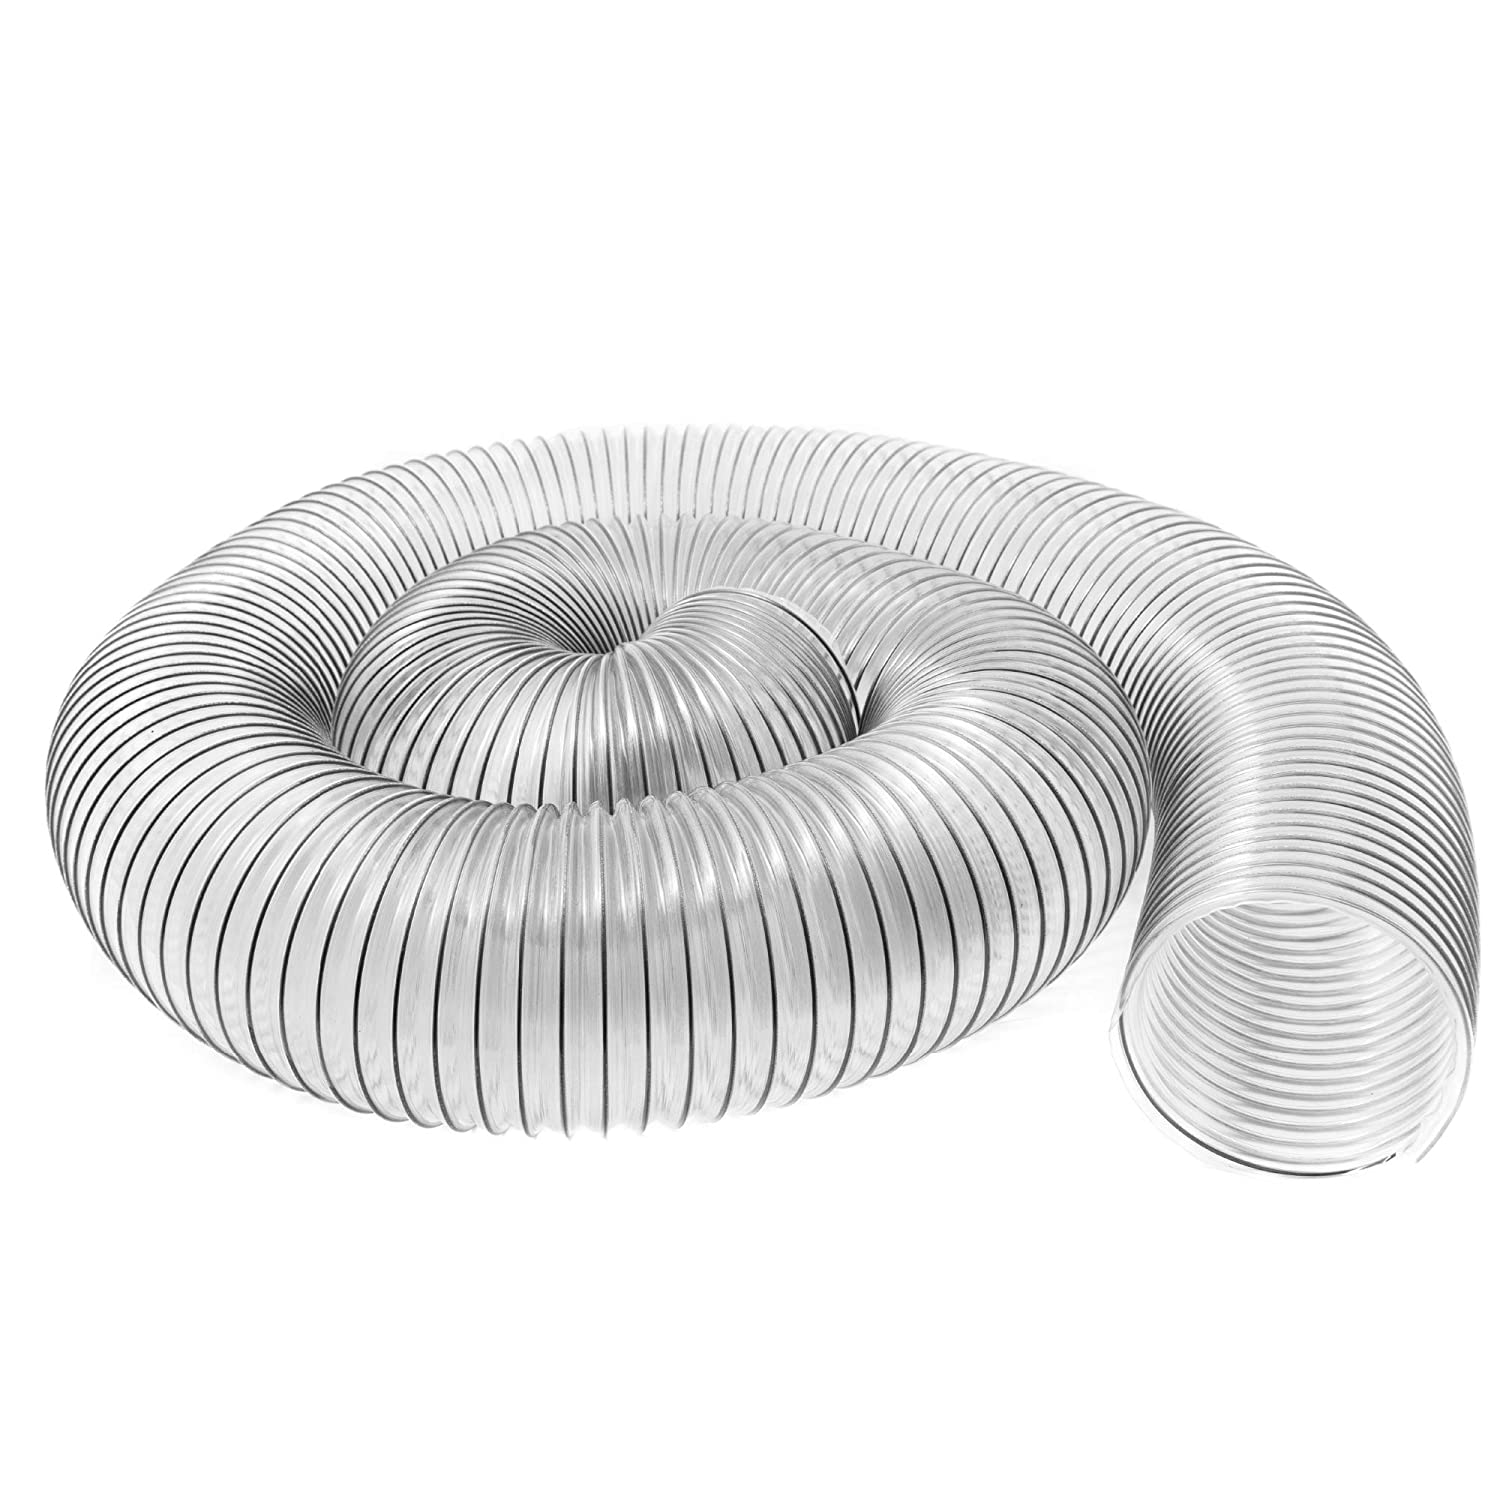 "6"" x 10' (6 inch diameter by 10 feet long) Ultra-Flex Clear Vue Heavy Duty PVC Dust, Debris and Fume Collection Hose - MADE IN USA!"